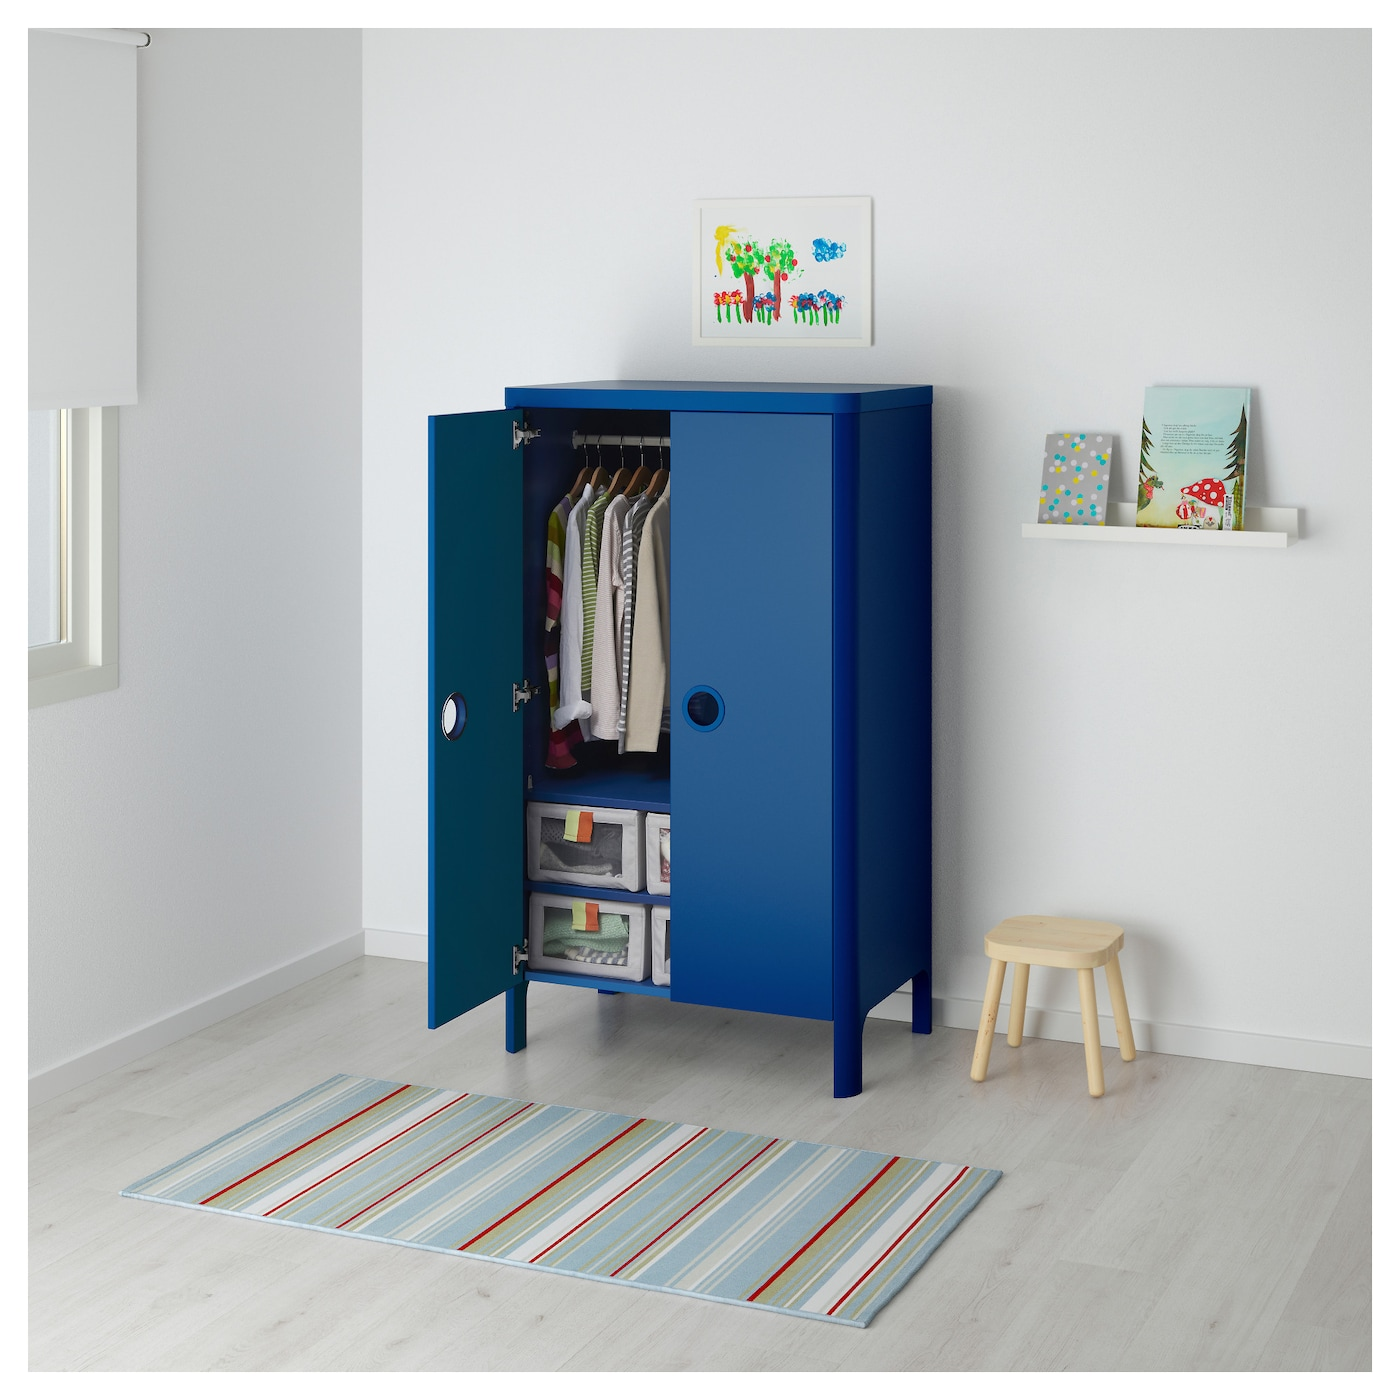 Superbe IKEA BUSUNGE Wardrobe You Can Adjust The Height Of The Clothes Rail And  Shelves As Your